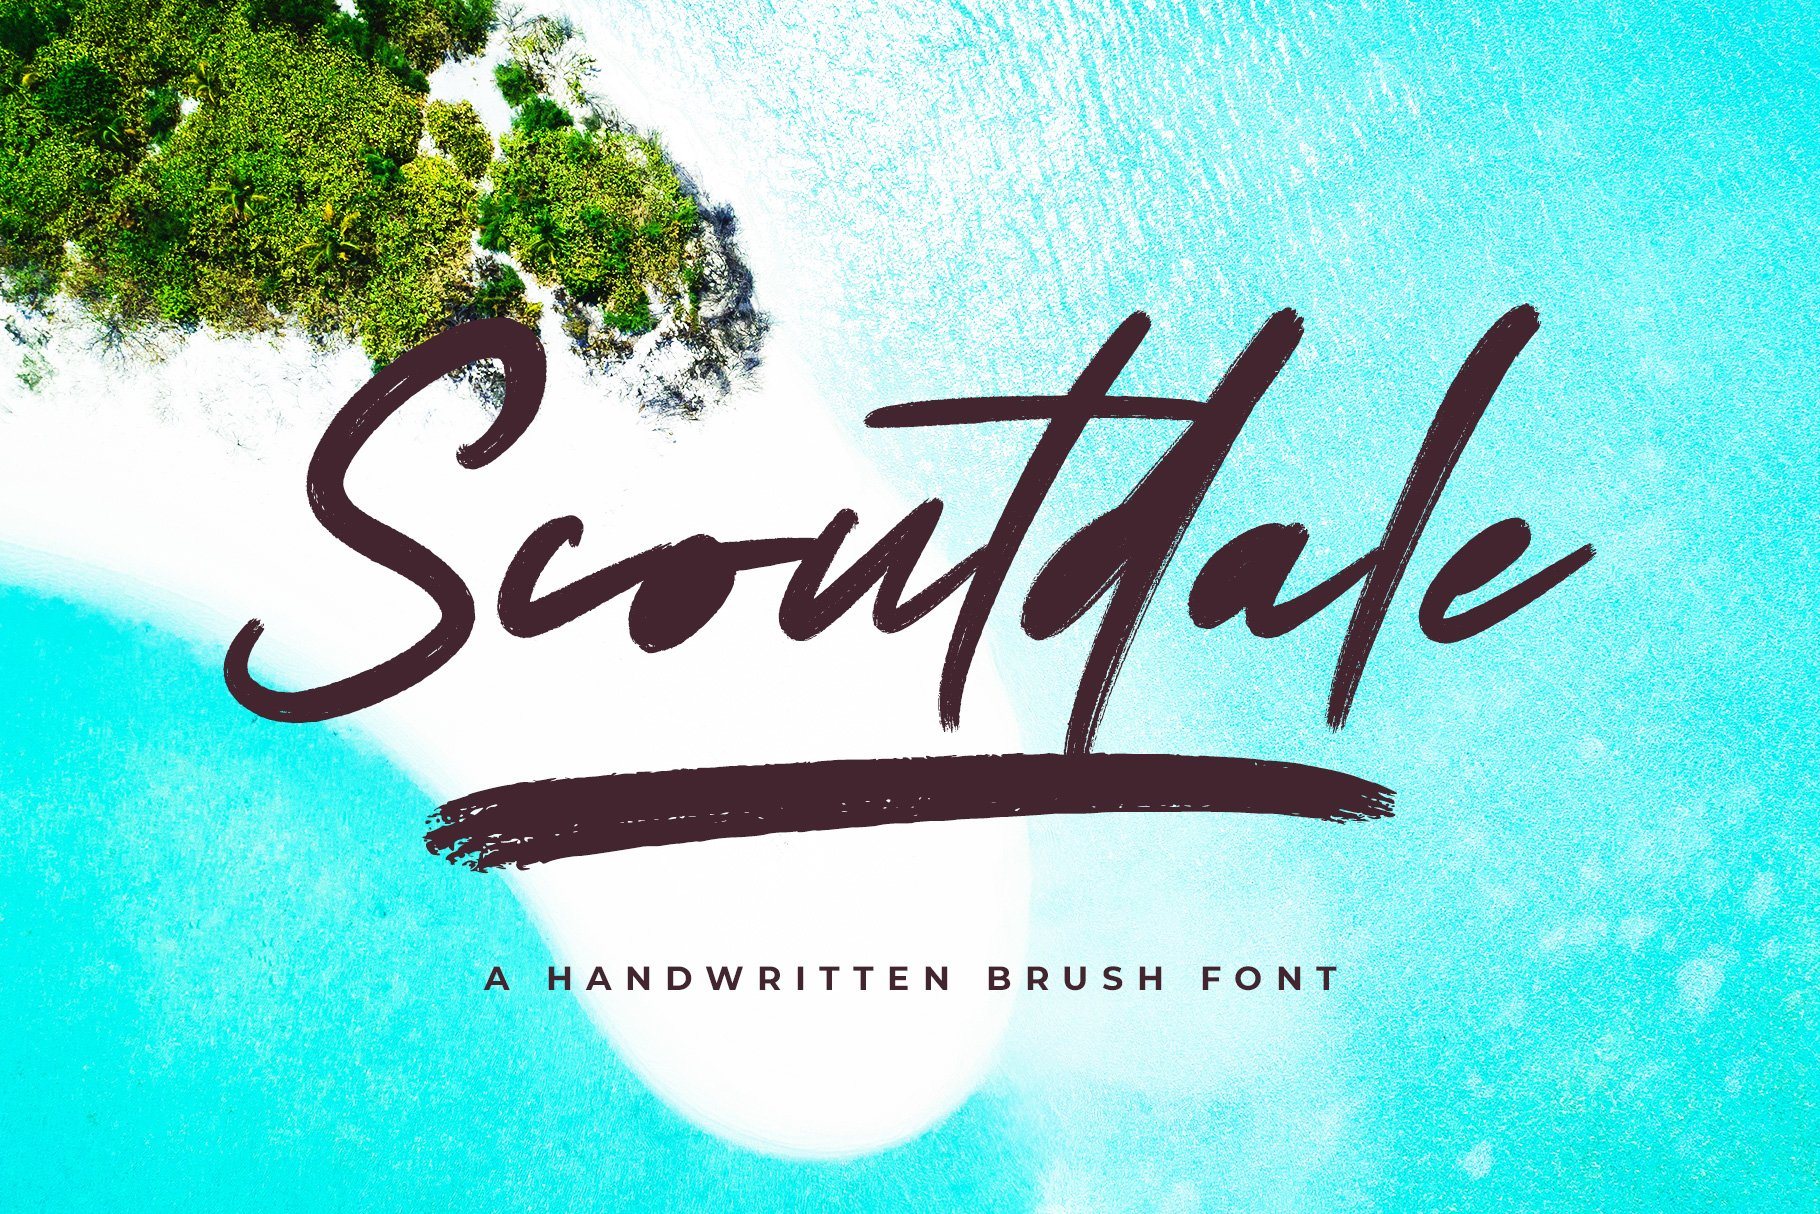 Scoutdale | Handwritten Brush Font example image 1